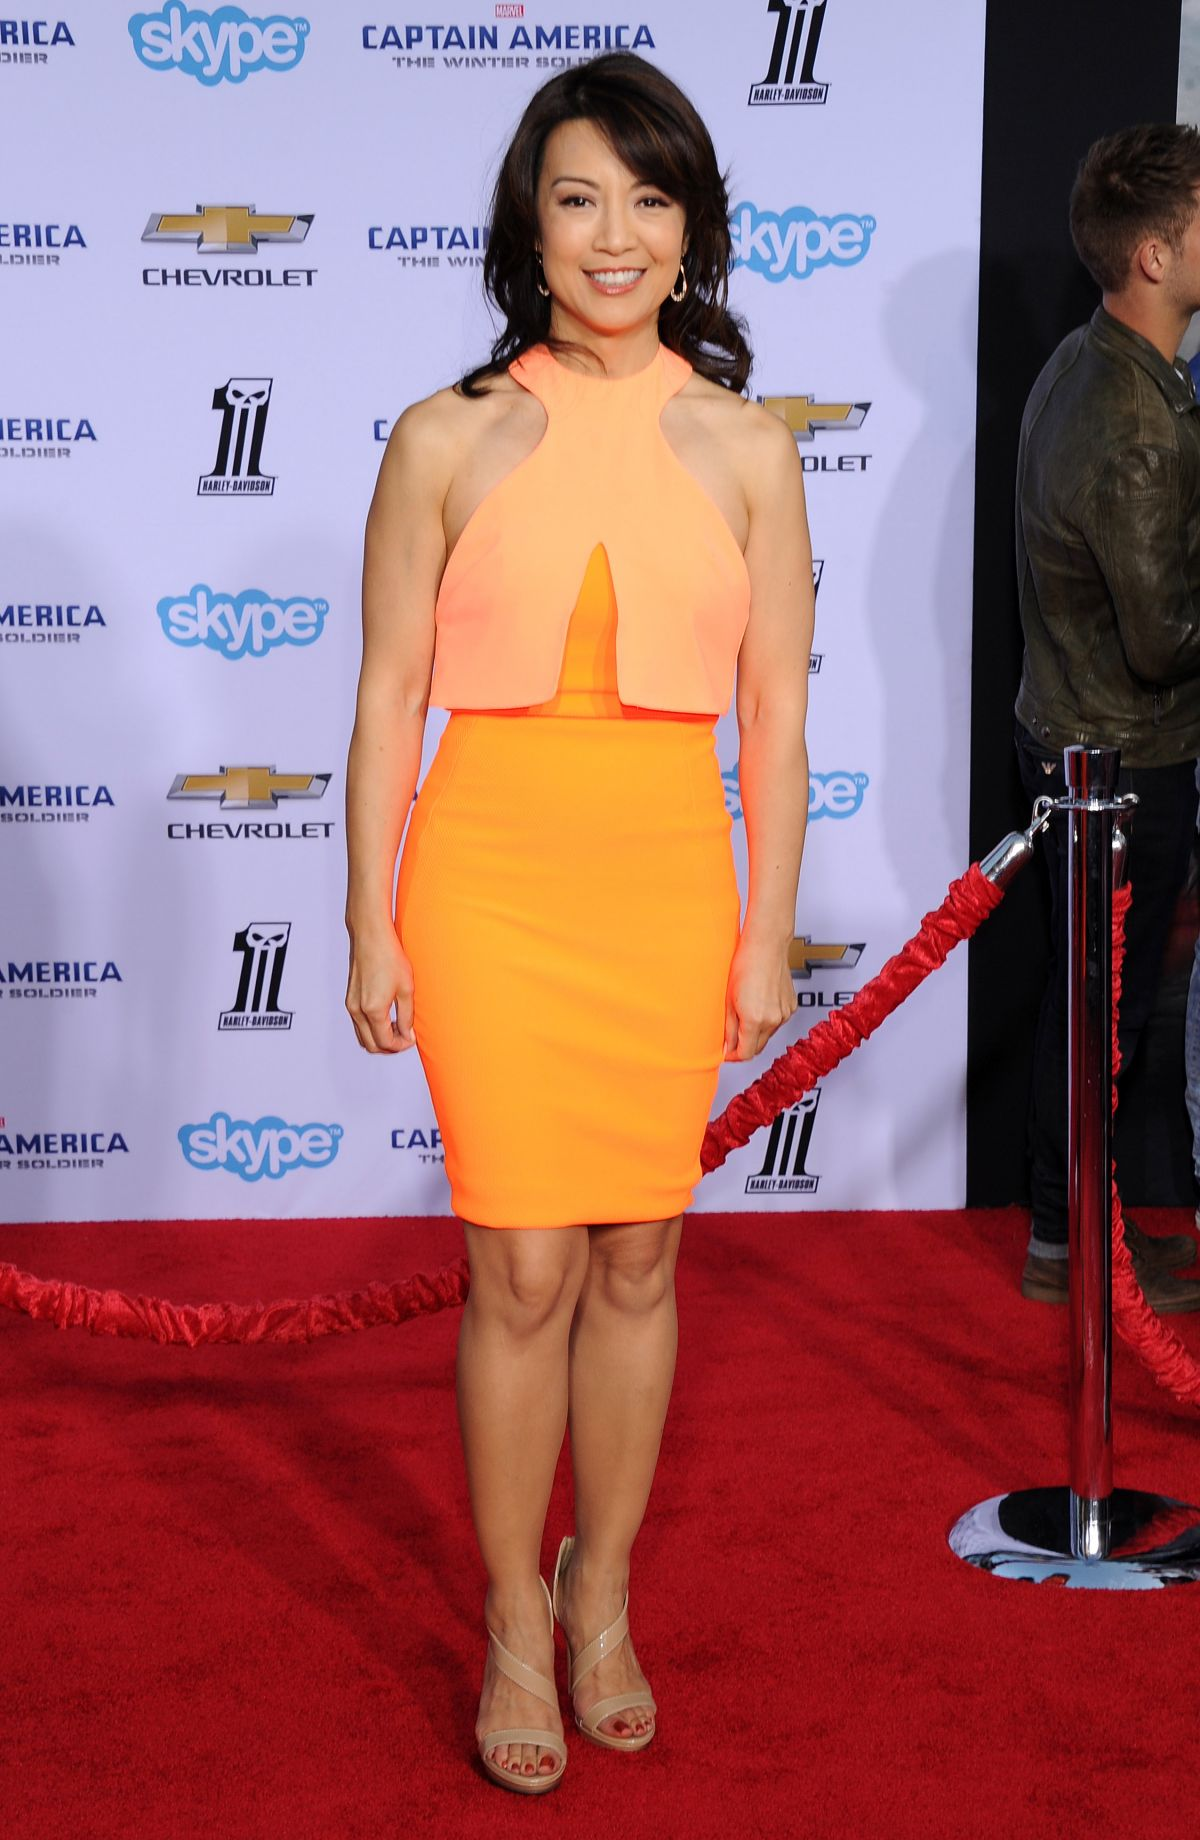 MING-NA WEN at Captain America: The Winter Soldier Premiere in Hollywood